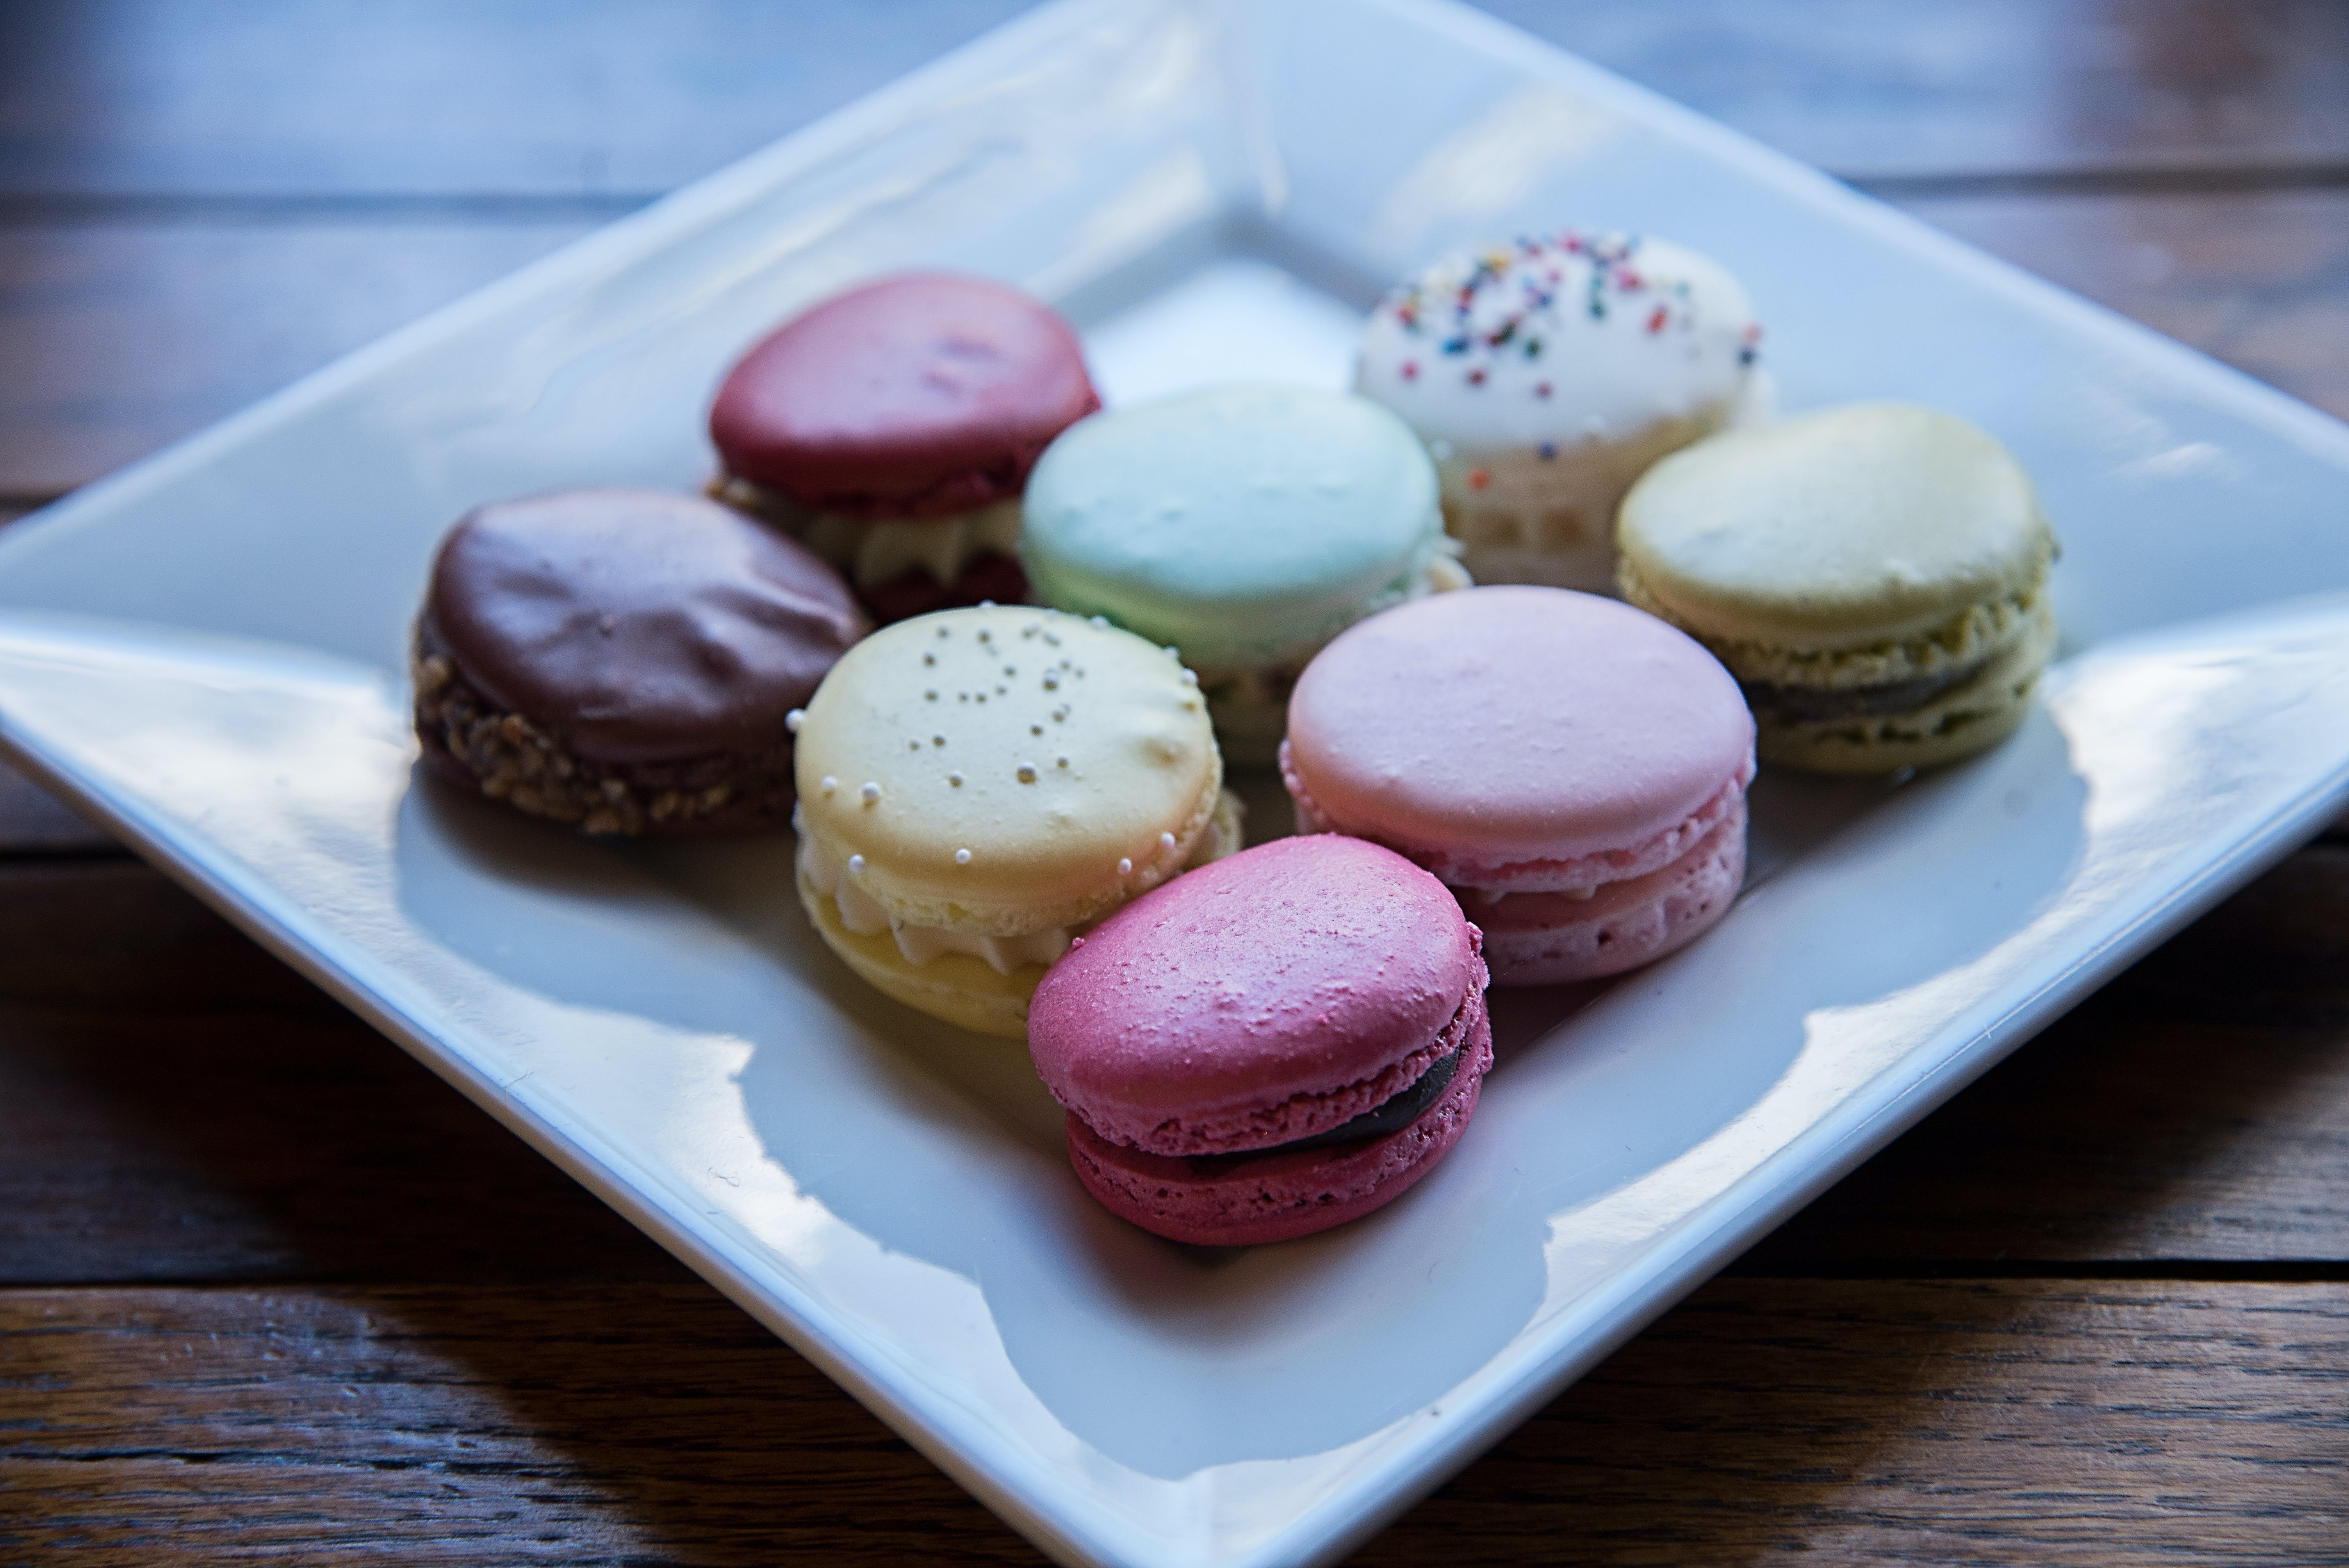 Macaroons Served on White Ceramic Plate